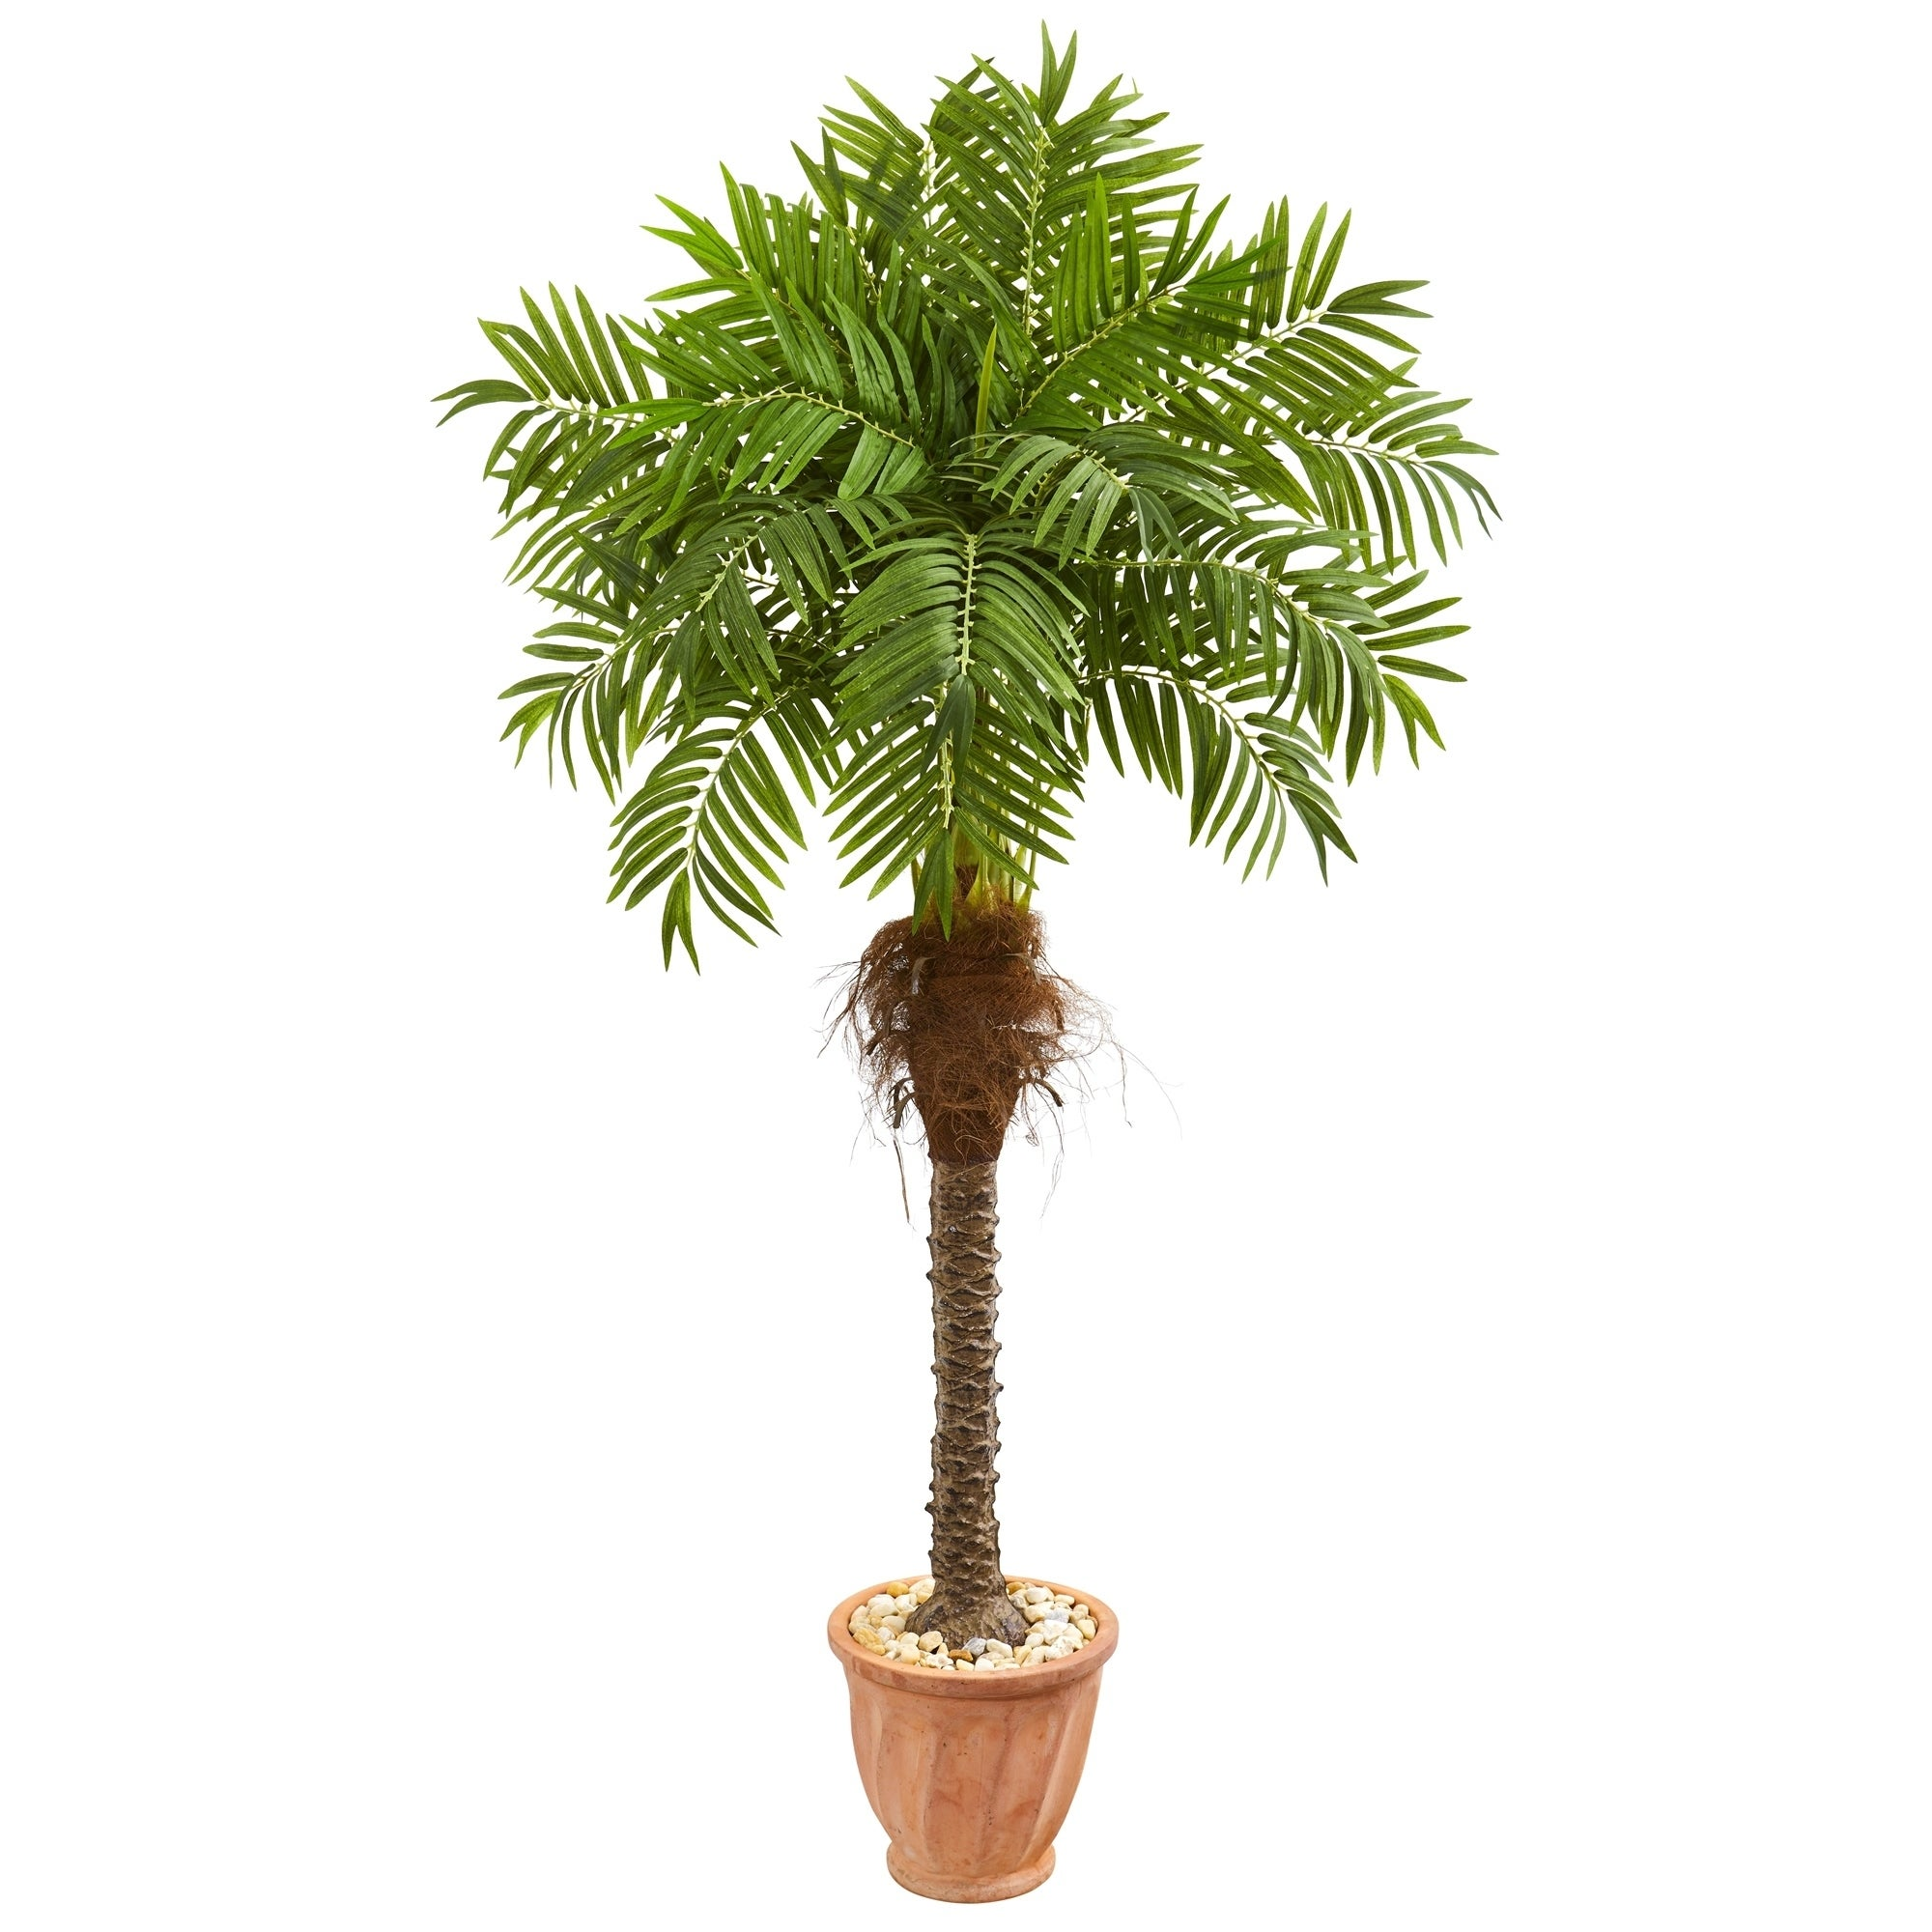 68 Robellini Palm Artificial Tree in Terra Cotta Planter